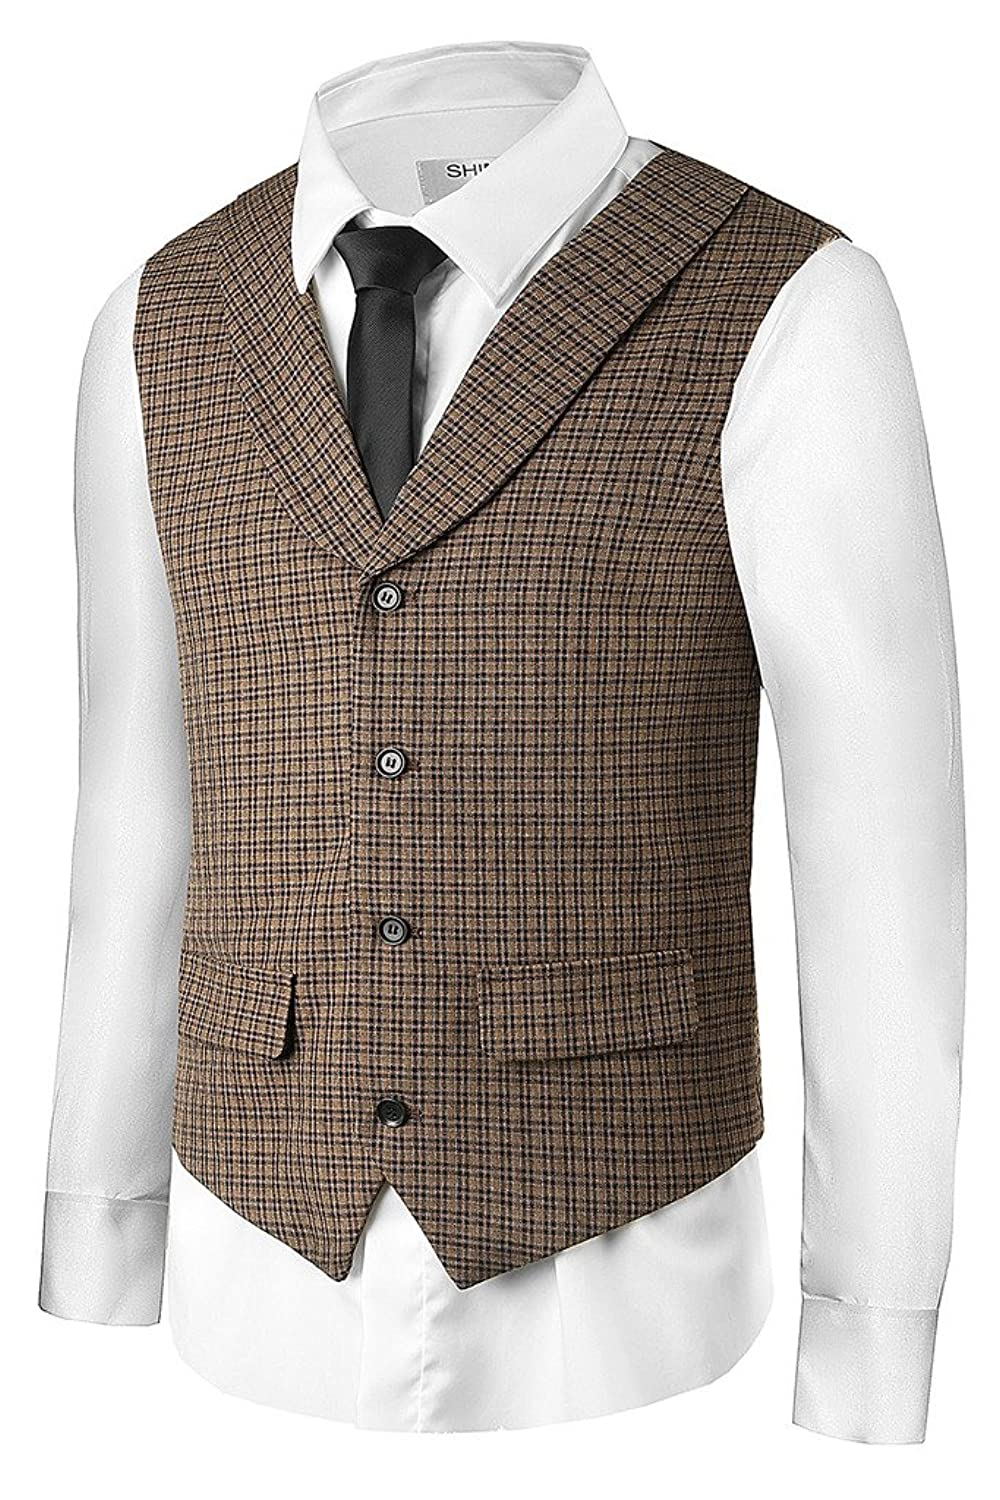 Men's Vintage Vests, Sweater Vests Hanayome Men Plaid Vest Suit Jacket Waistcoat Brown Business Shawl Collar Vests VS28 $28.50 AT vintagedancer.com